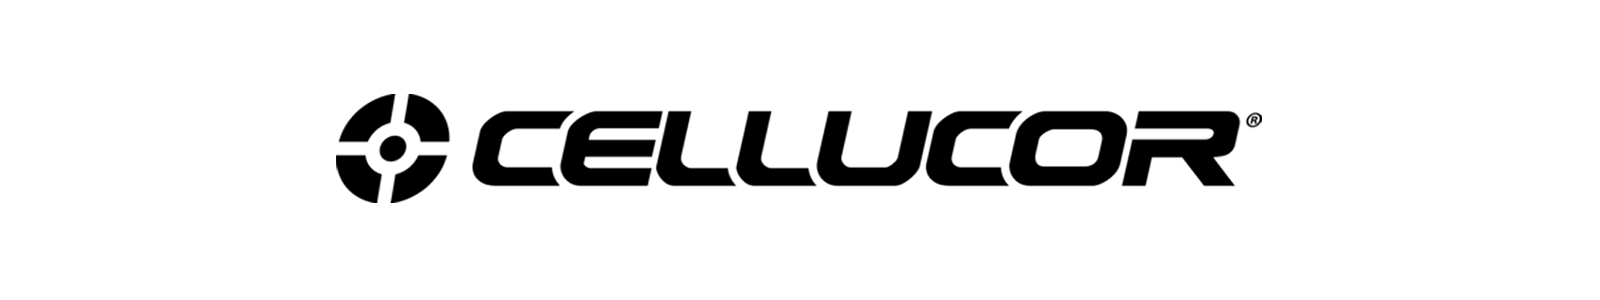 Brands - Cellucor